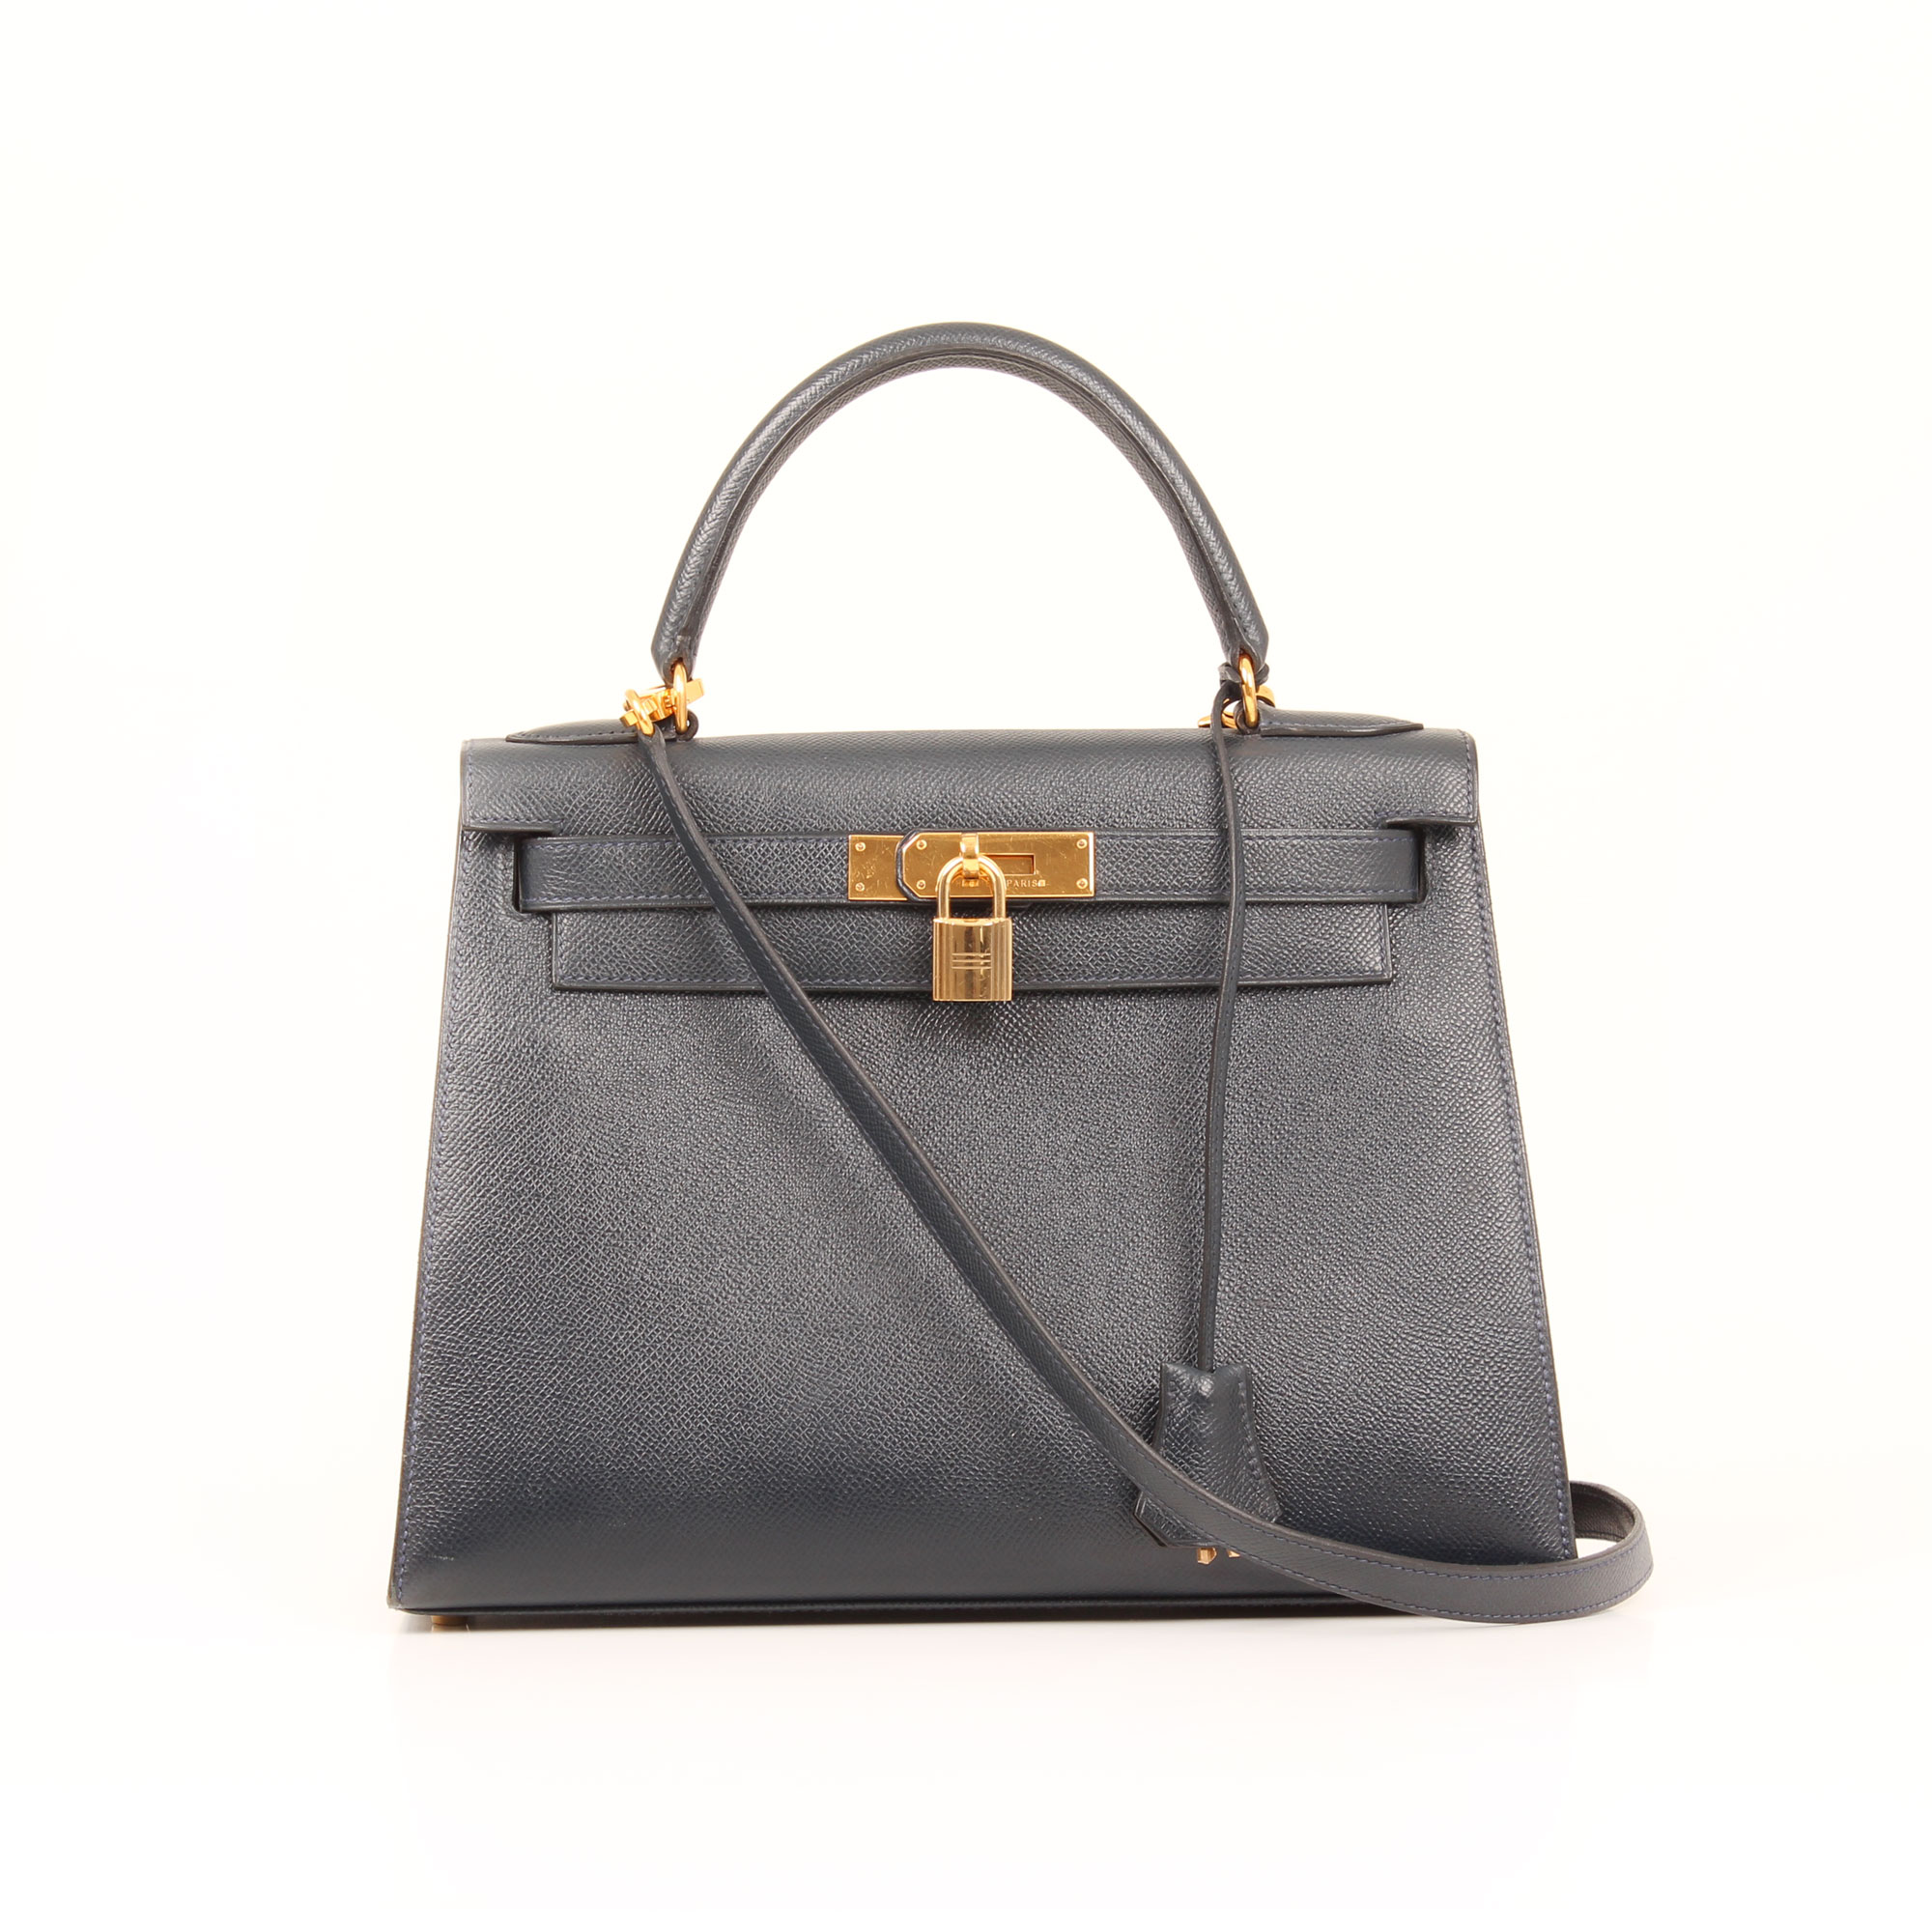 Front image of hermes kelly 28 epsom leather bleu de presse